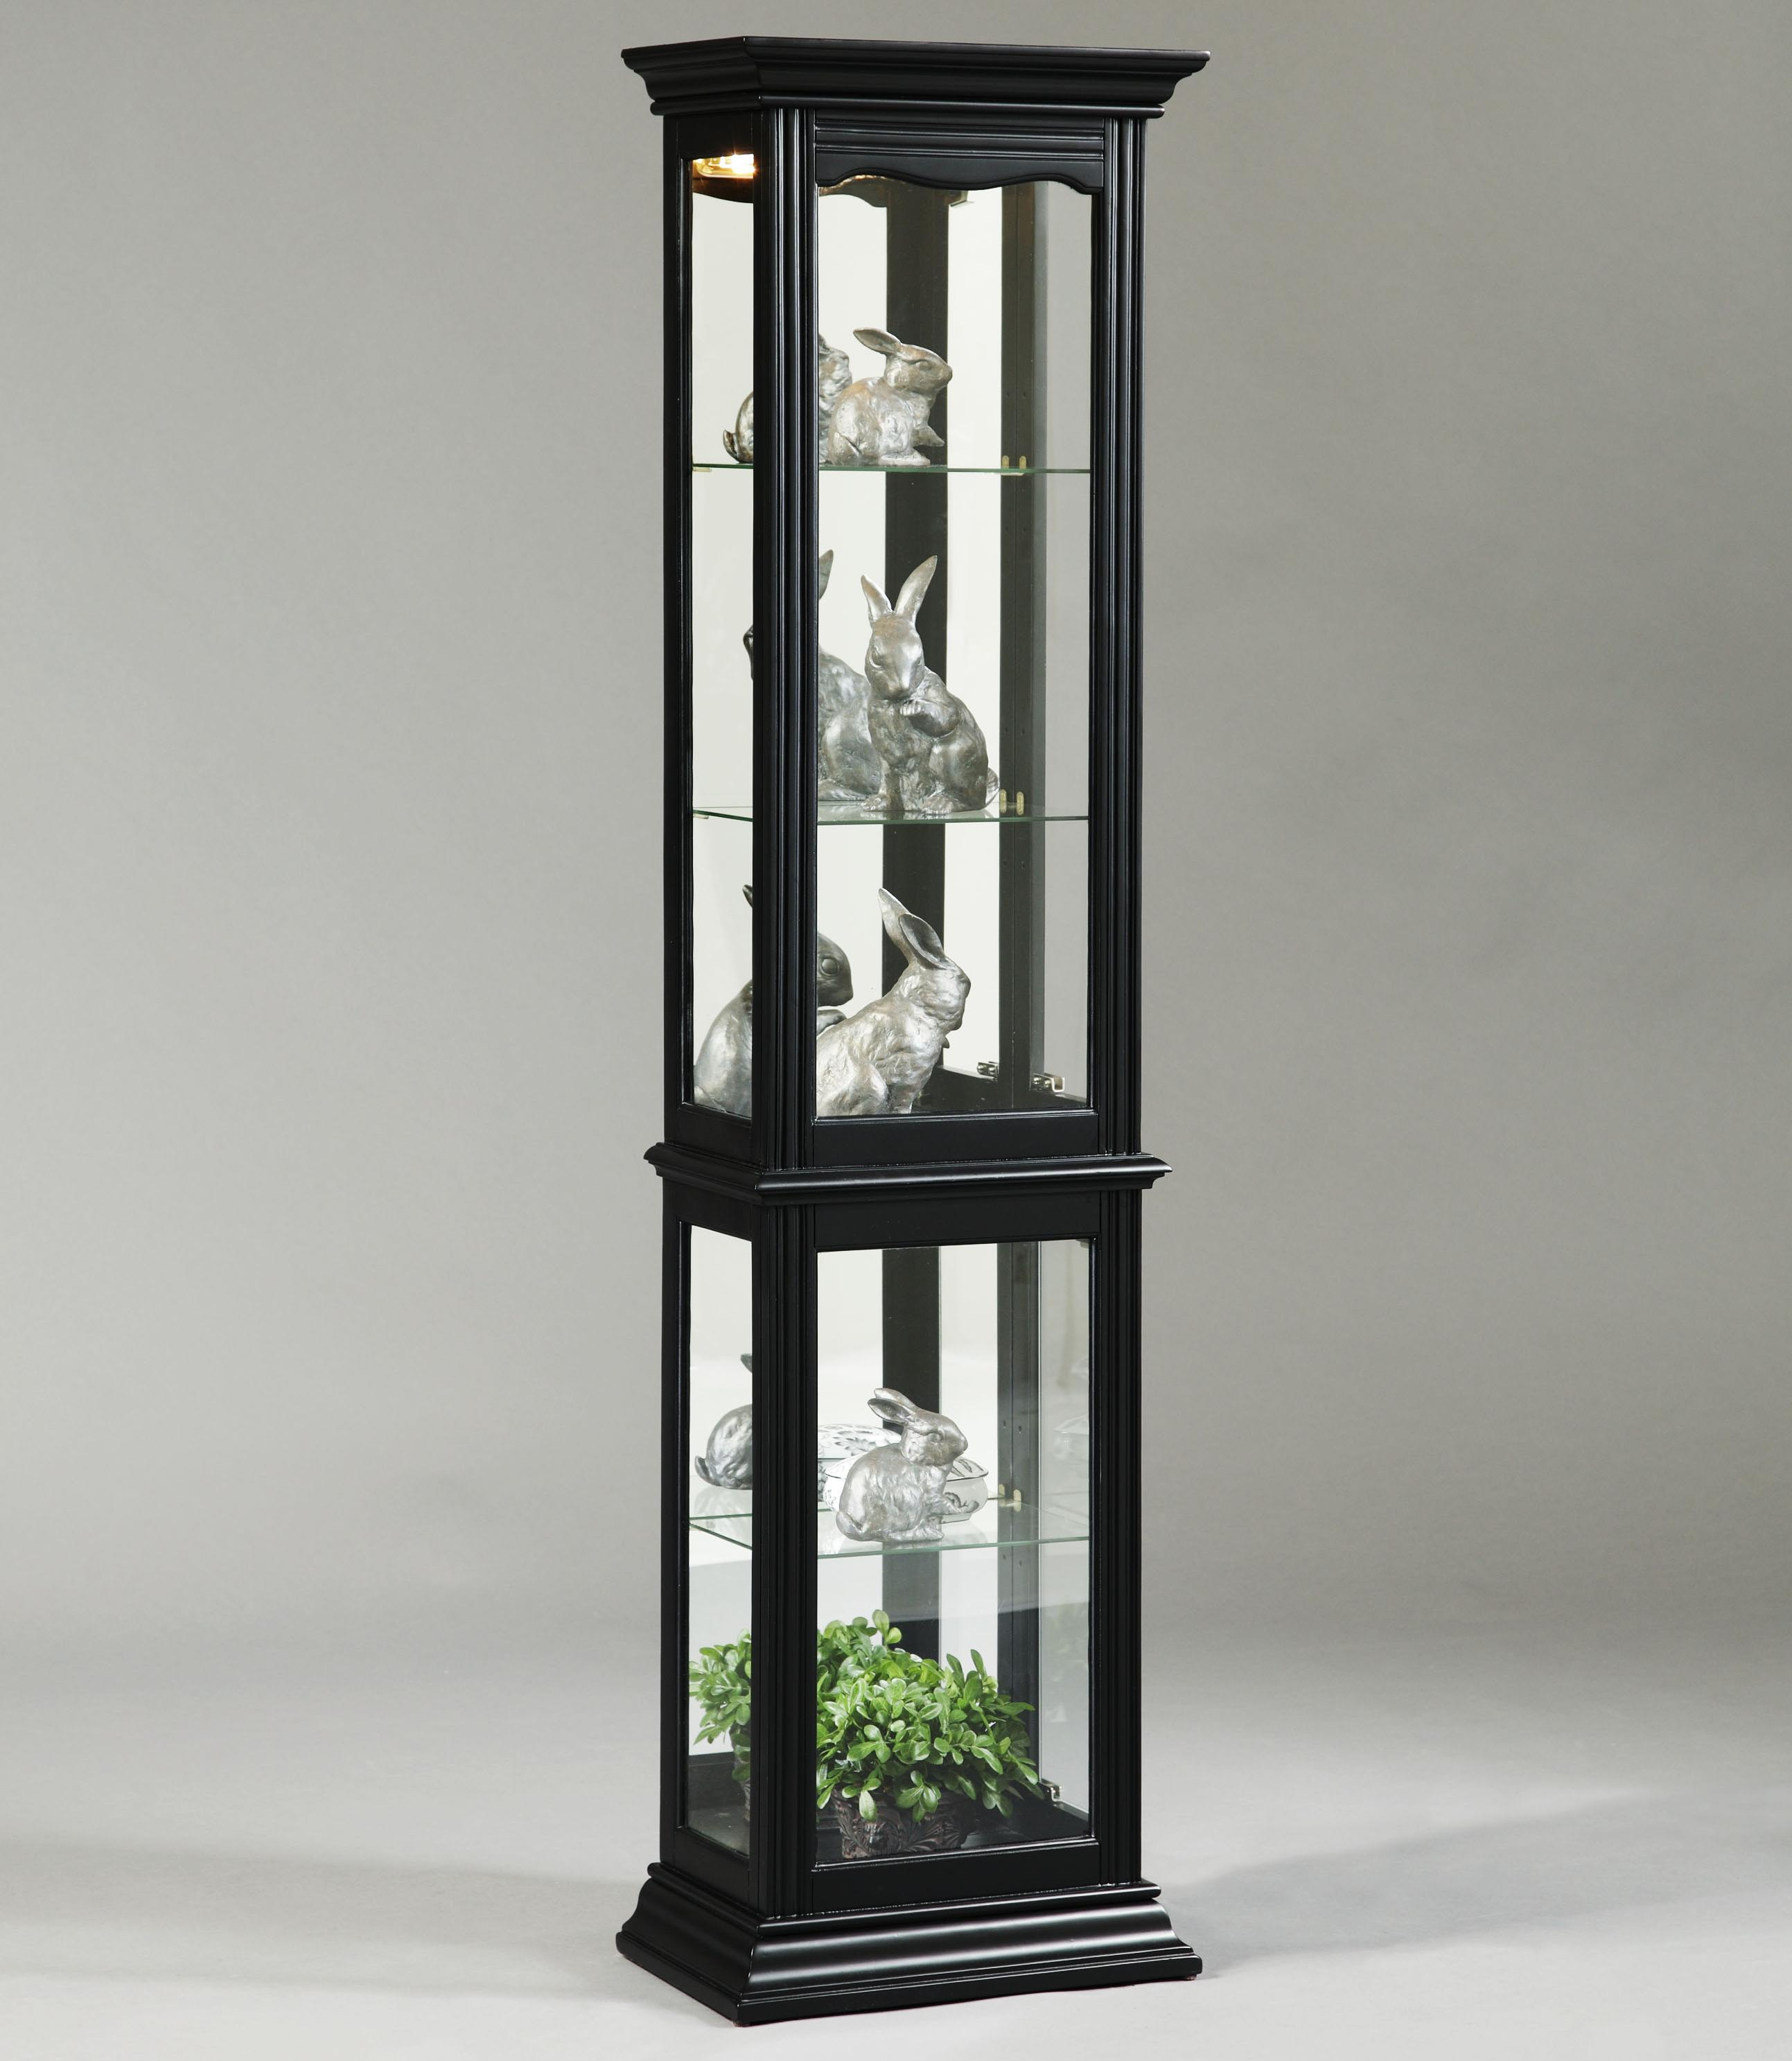 By Pulaski Furniture. Oxford Black Curio Cabinet